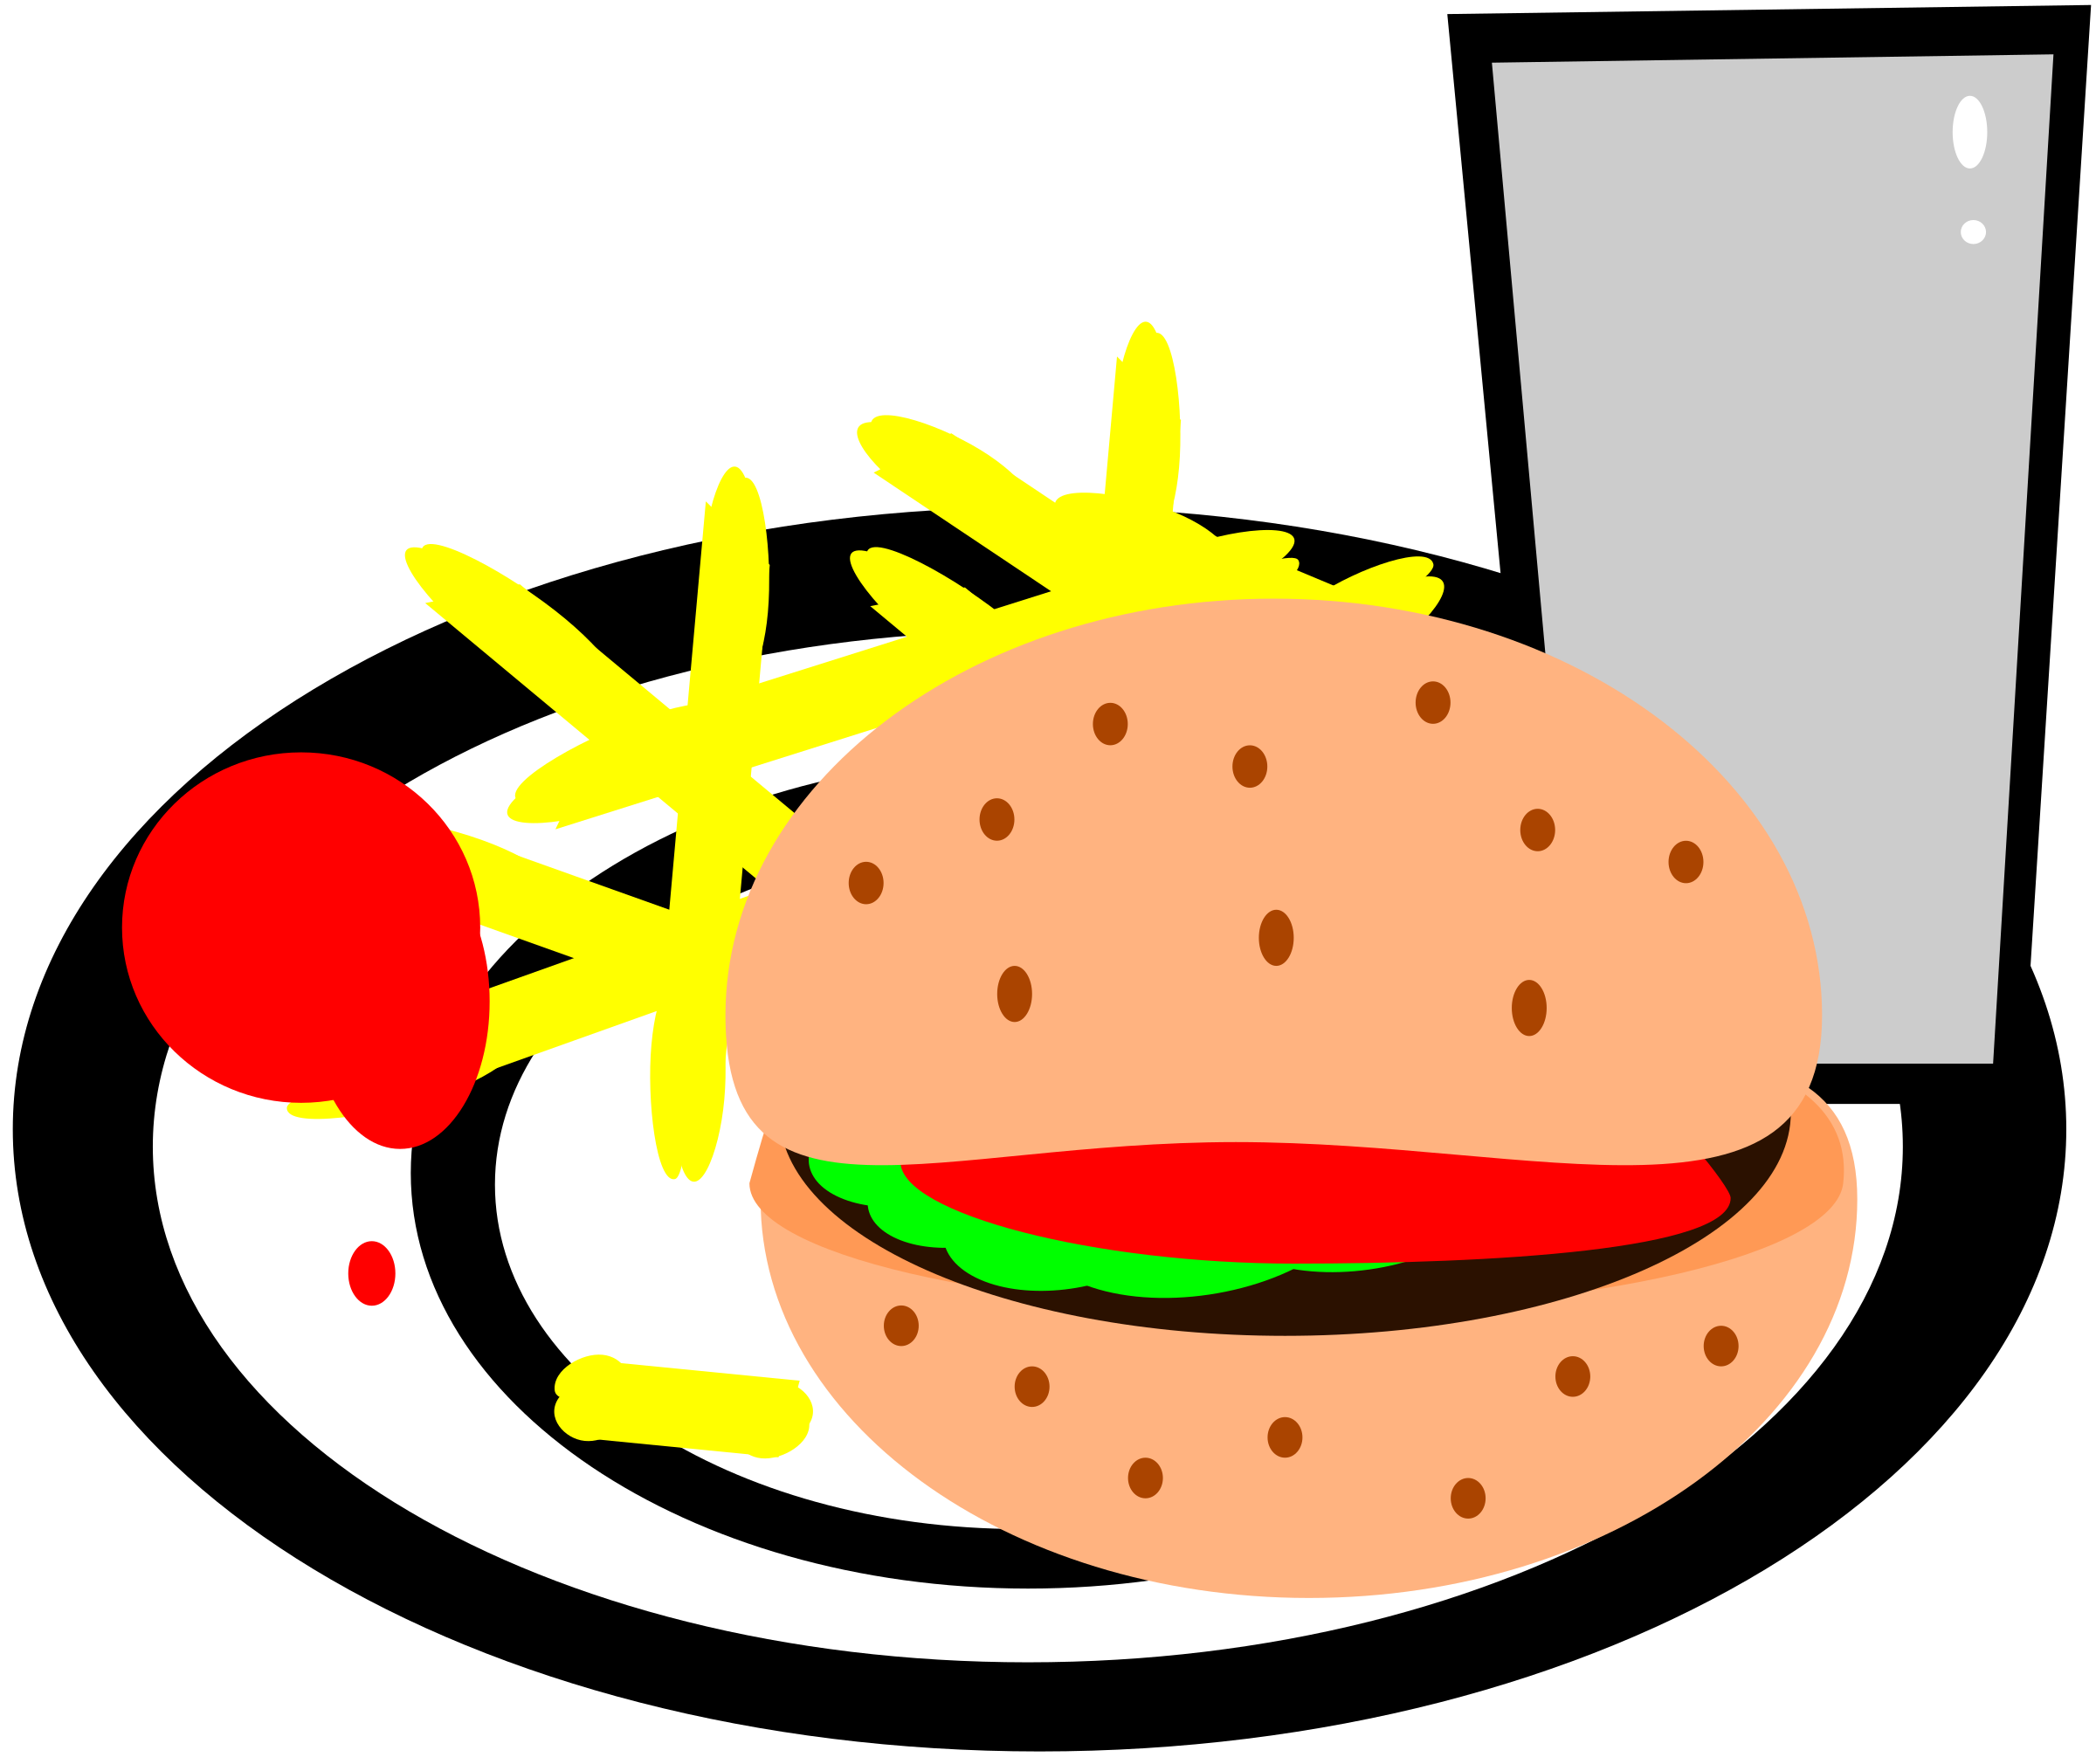 Burger clipart burger chip And Clipart chips chips burger